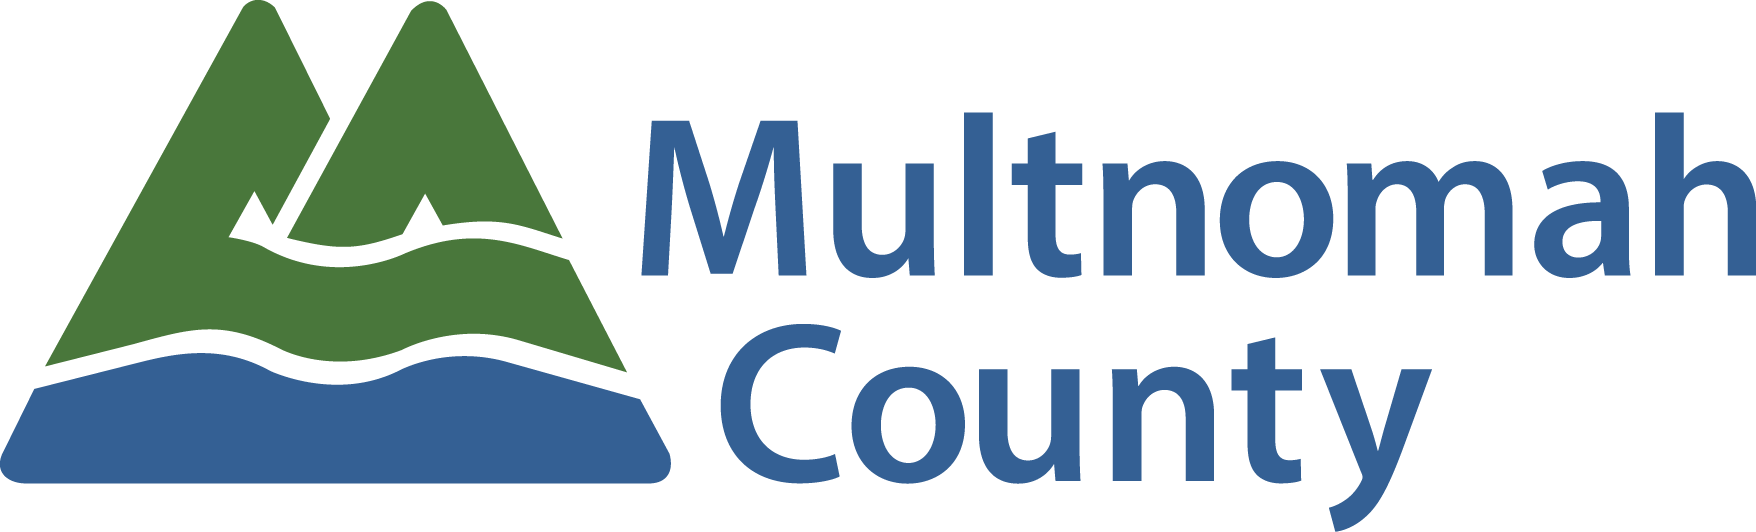 County_Logo.png